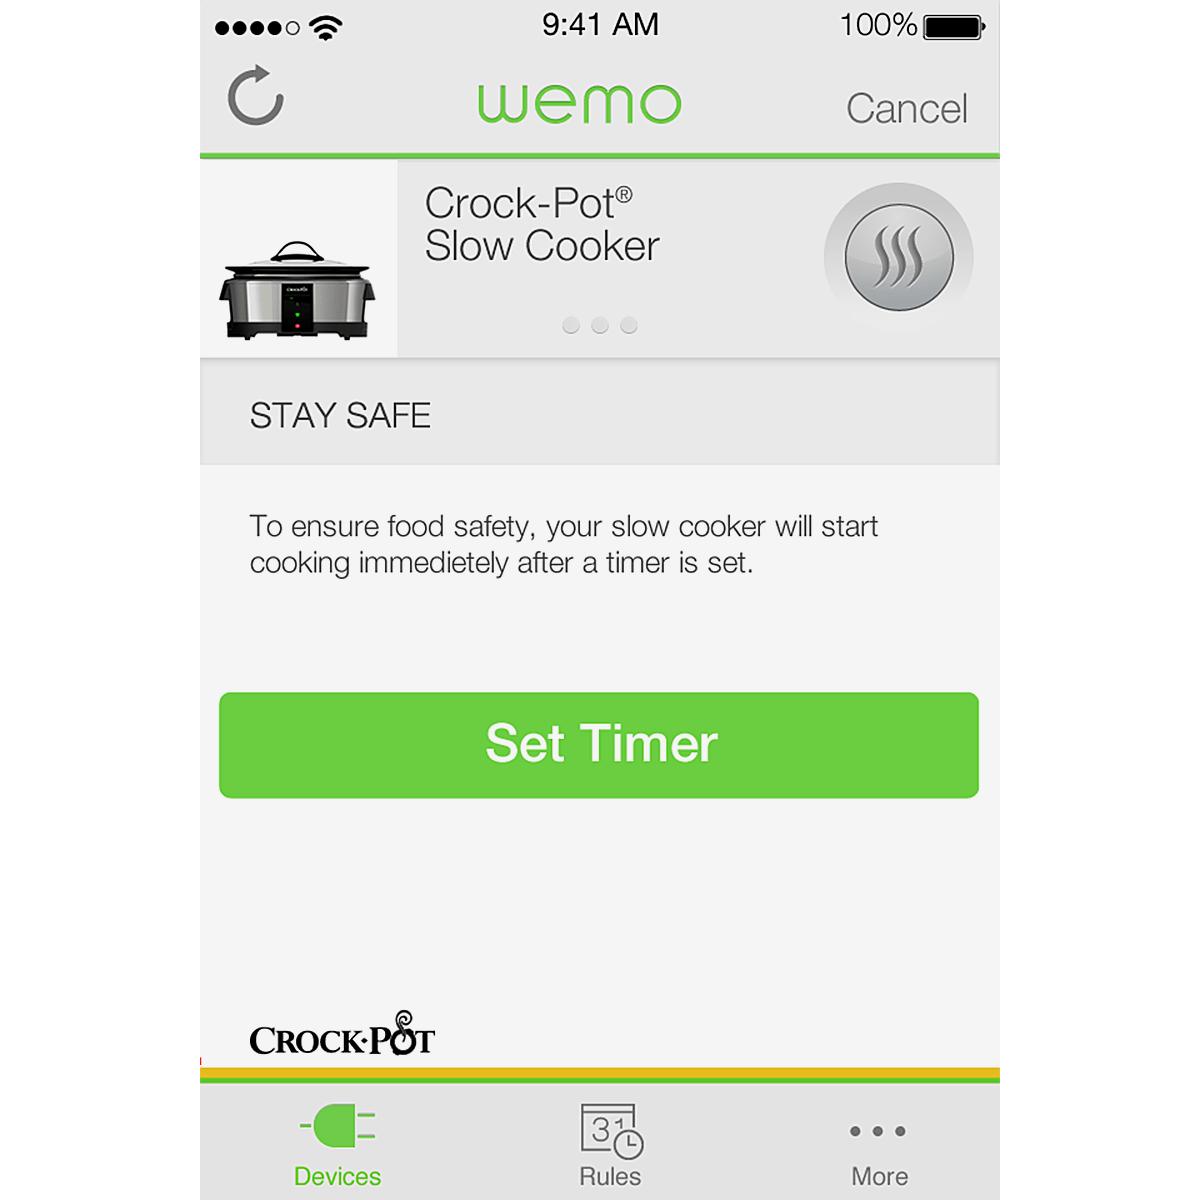 Crock-Pot® 6-Quart Wifi-Enabled Smart Slow Cooker with WeMo® - Stainless Steel, SCCPWM600-V2 5